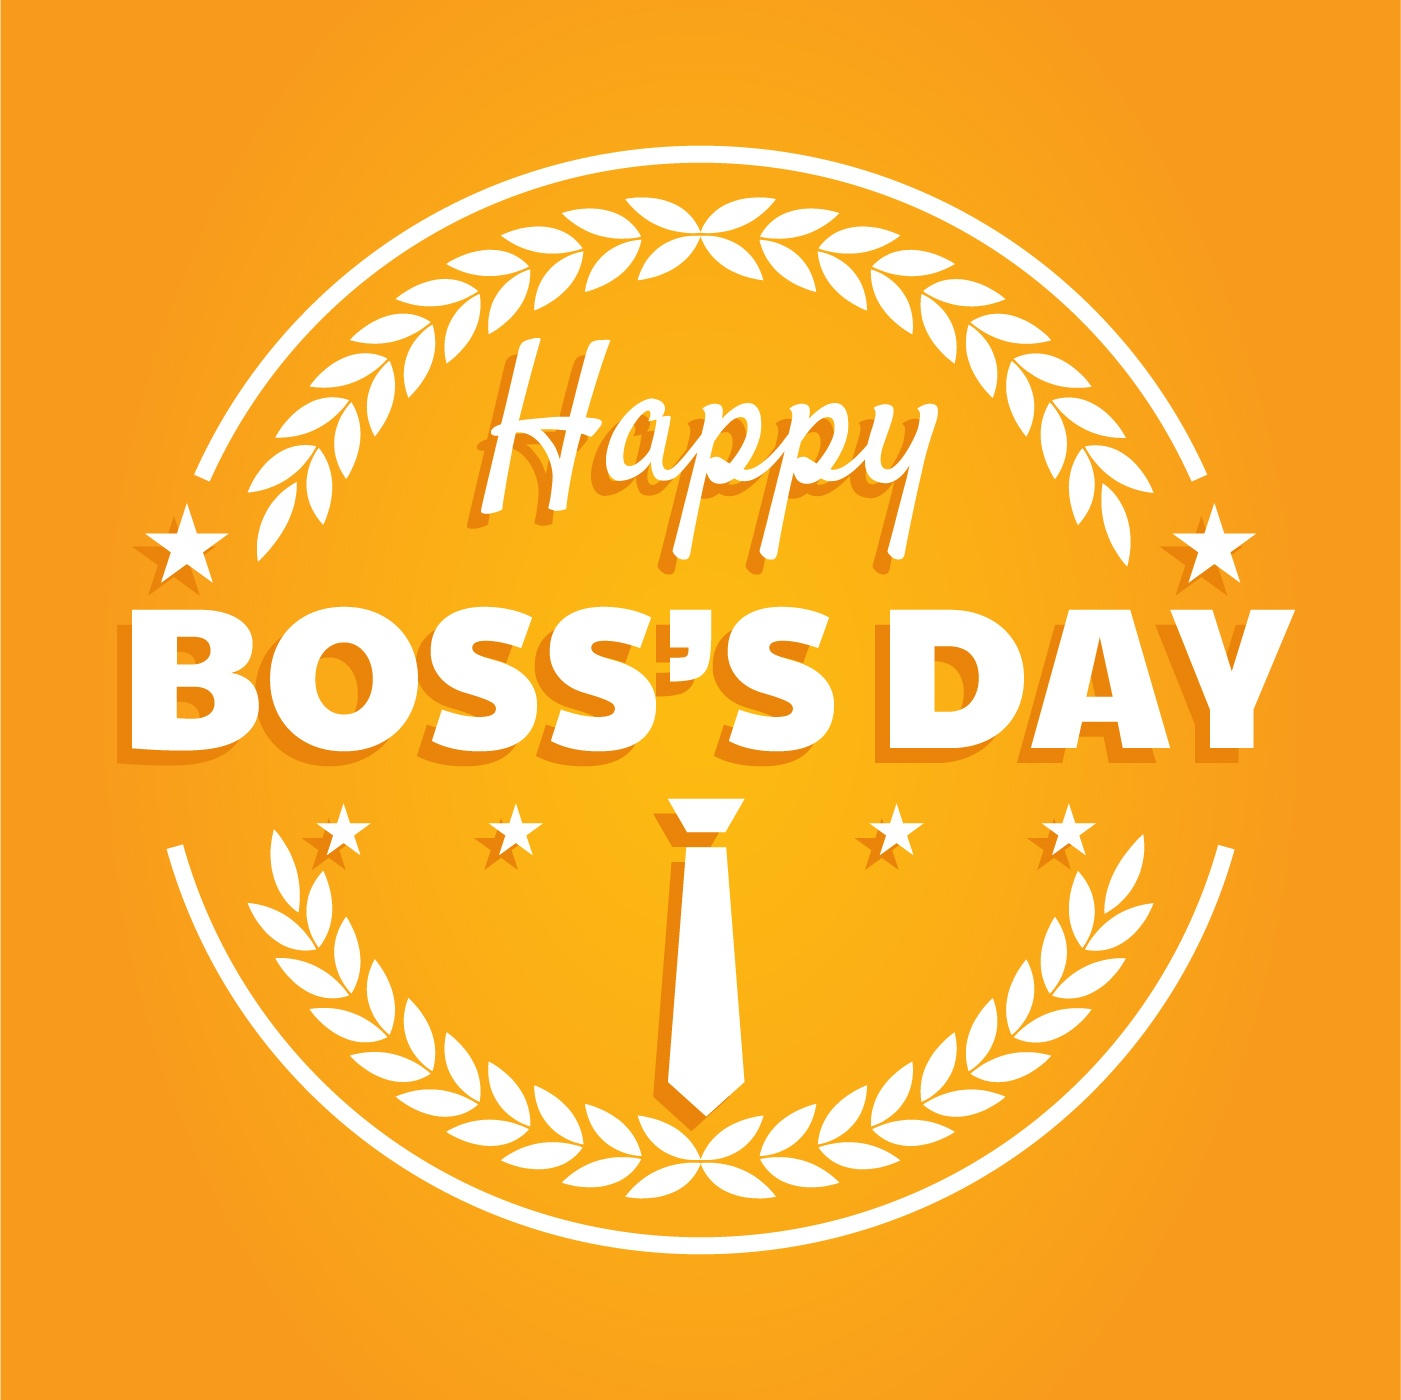 Happy Boss Day Wishes Greeting Cards, Free Ecards & Gift Cards - Free Printable Boss's Day Cards